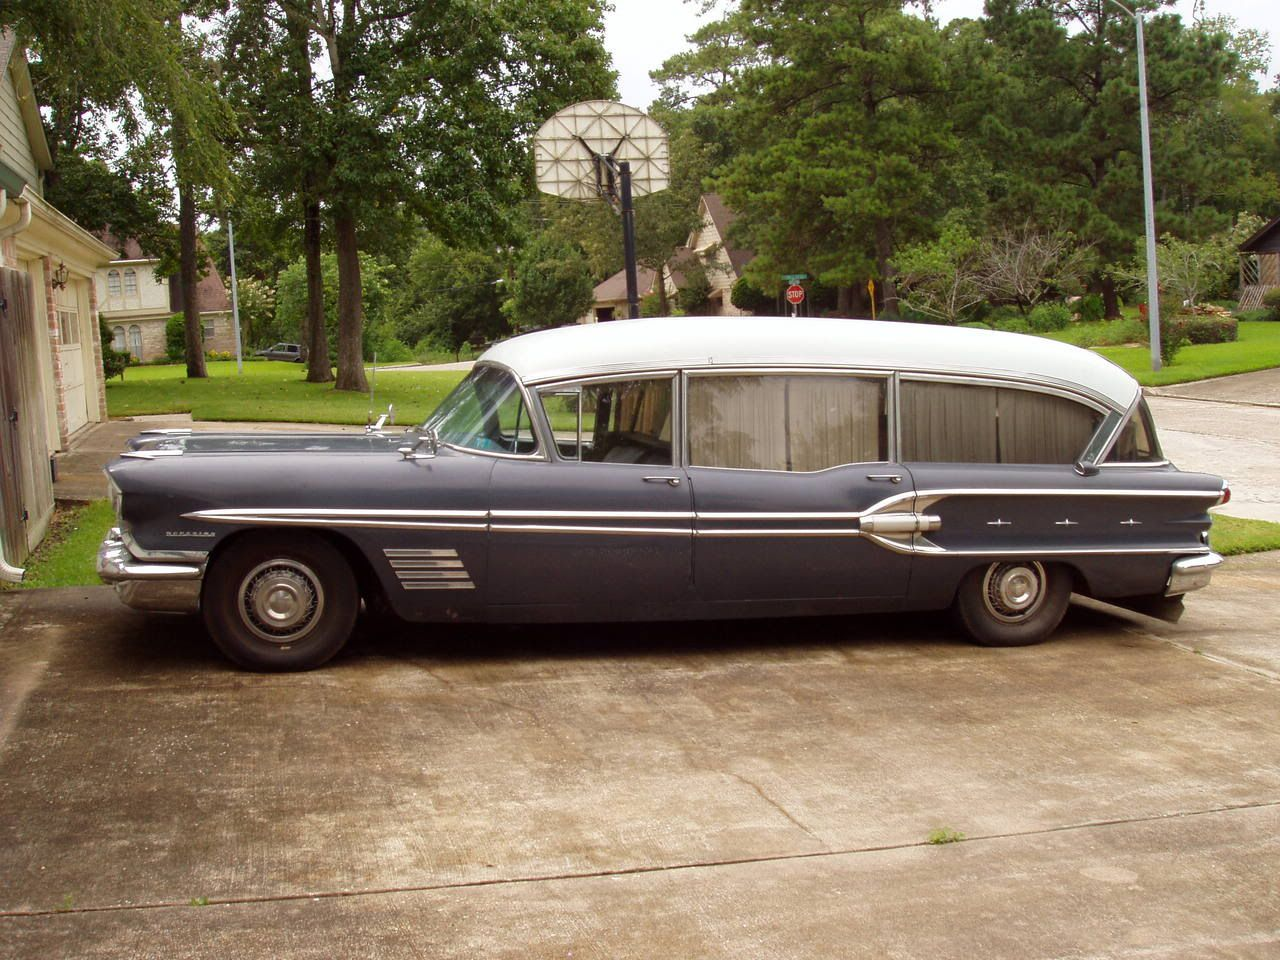 Matchless g 11 csr for sale 1958 on car and classic uk c544589 - 1958 Pontiac Hearse Very Rare